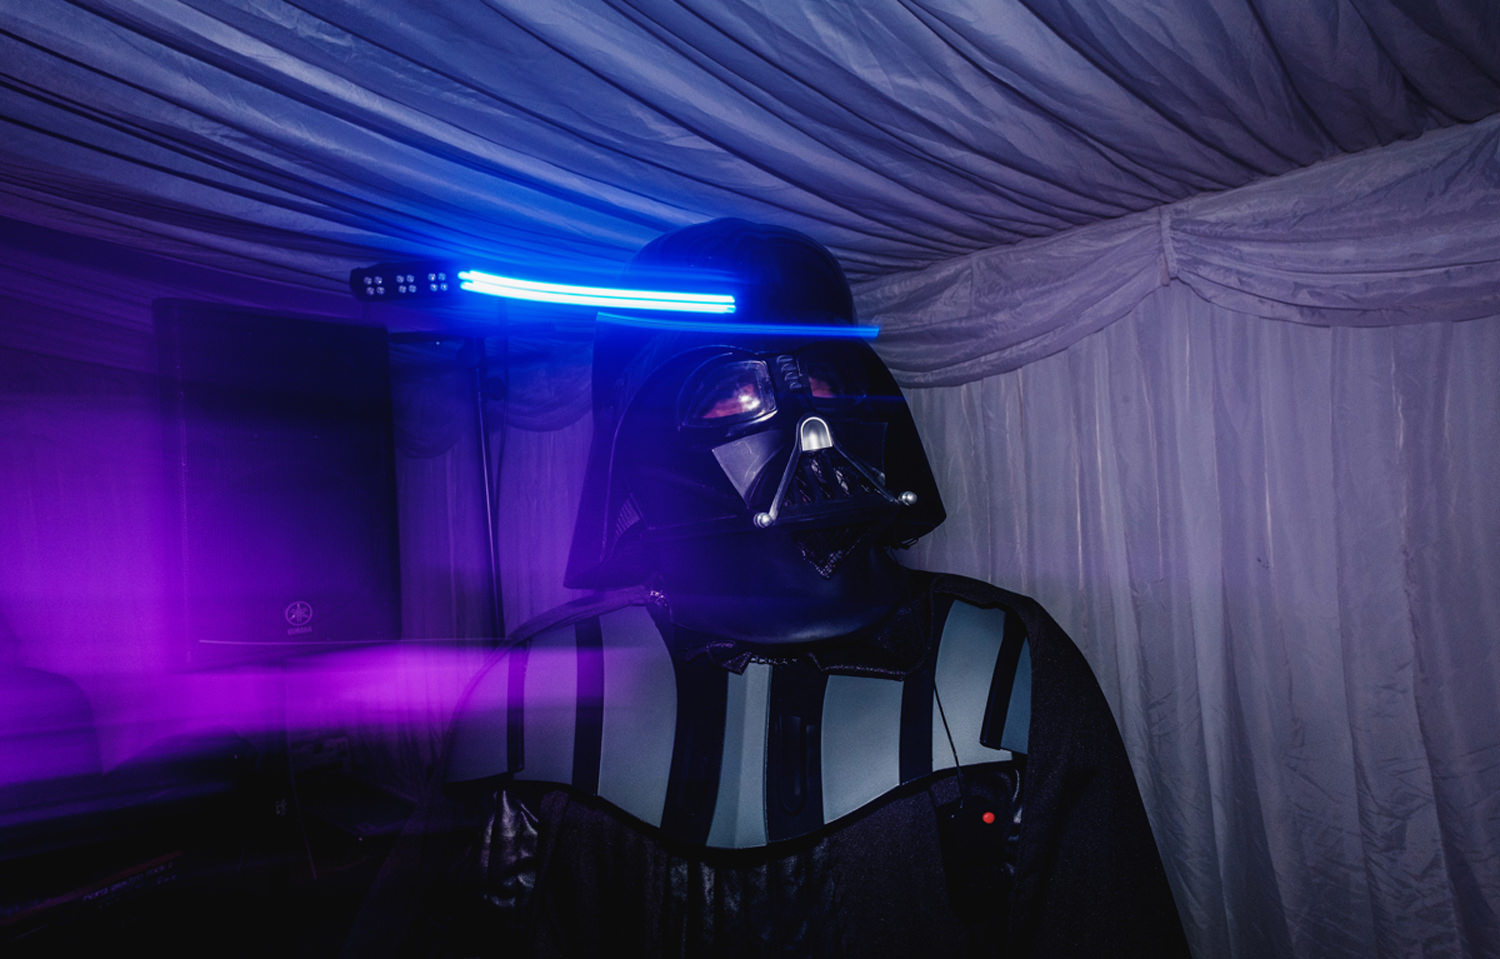 darth vader with light trails at a wedding